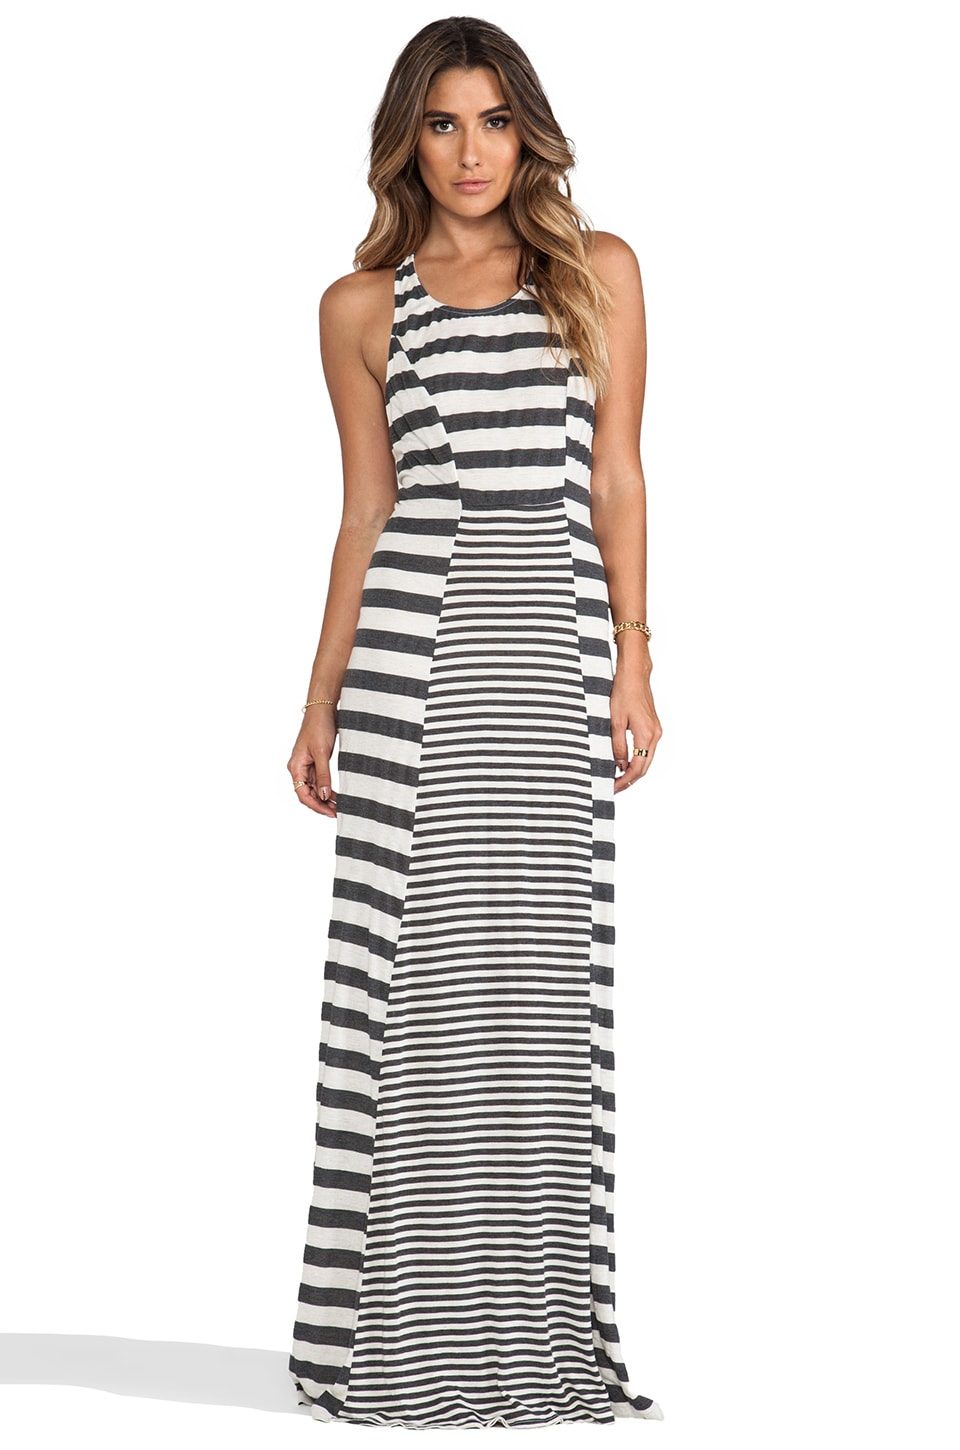 Gypsy 05 Saint Malo Knit Jersey Stripe Panel Maxi Tank Dress in Bisque